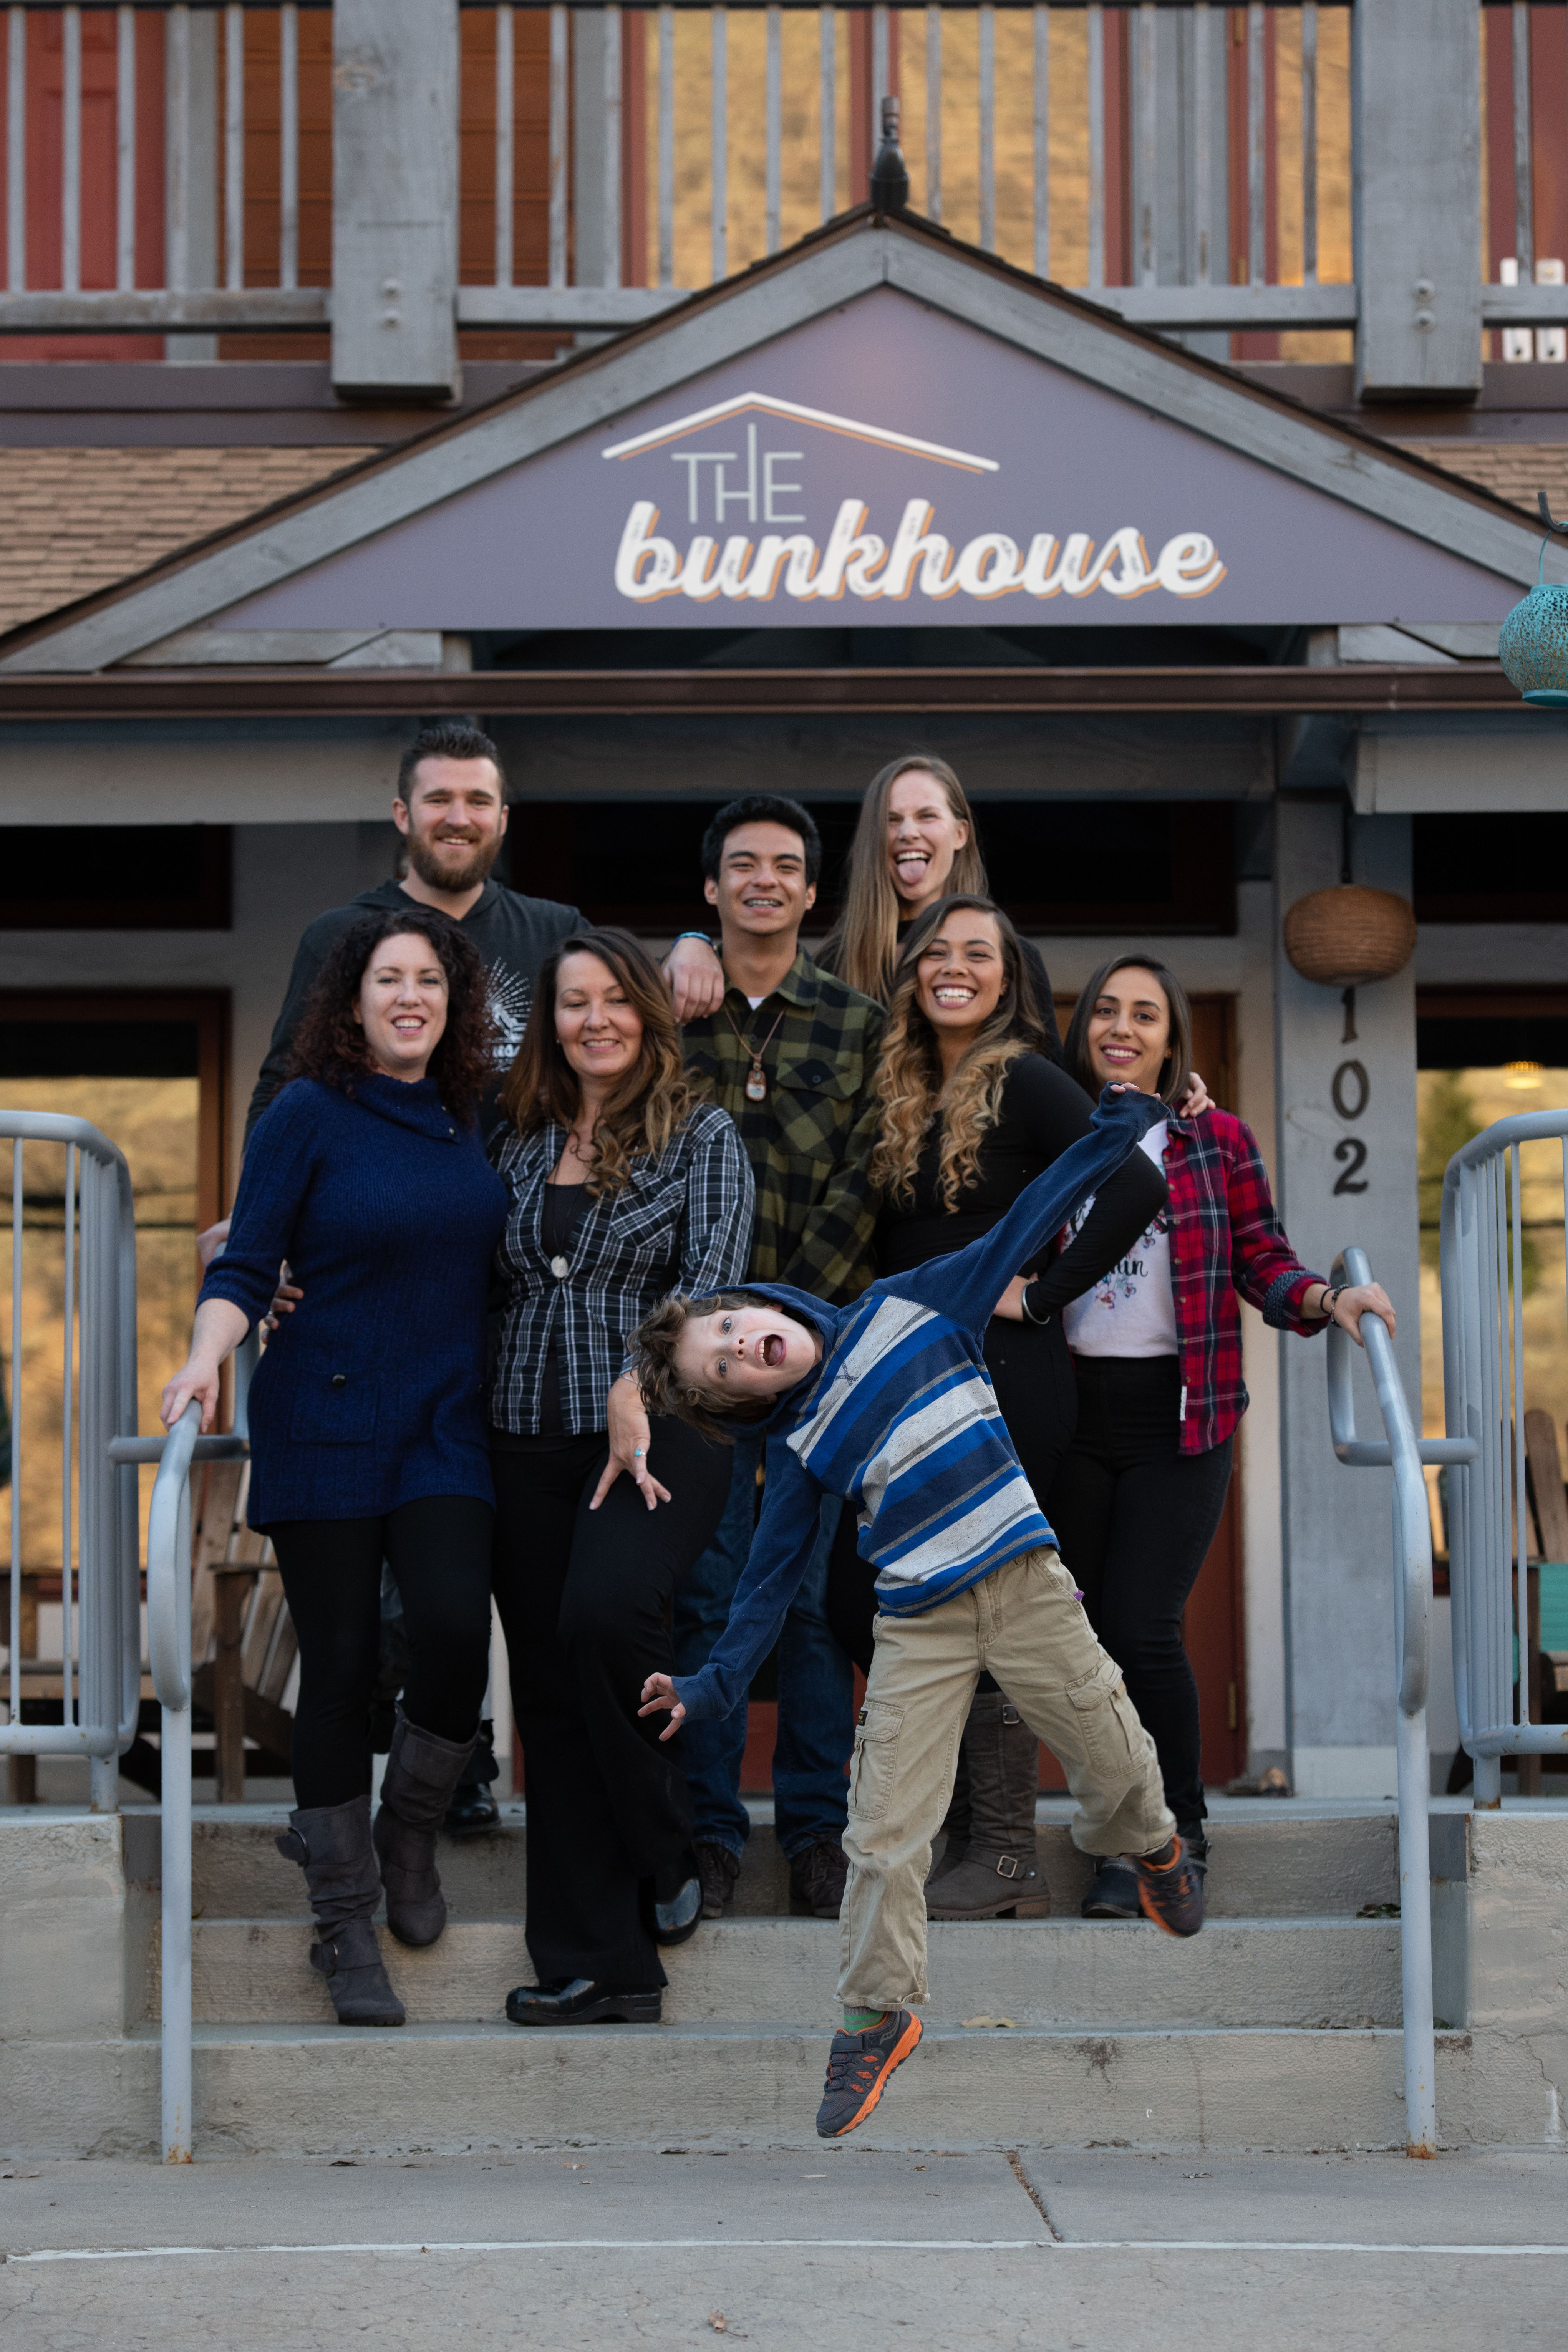 The Bunkhouse